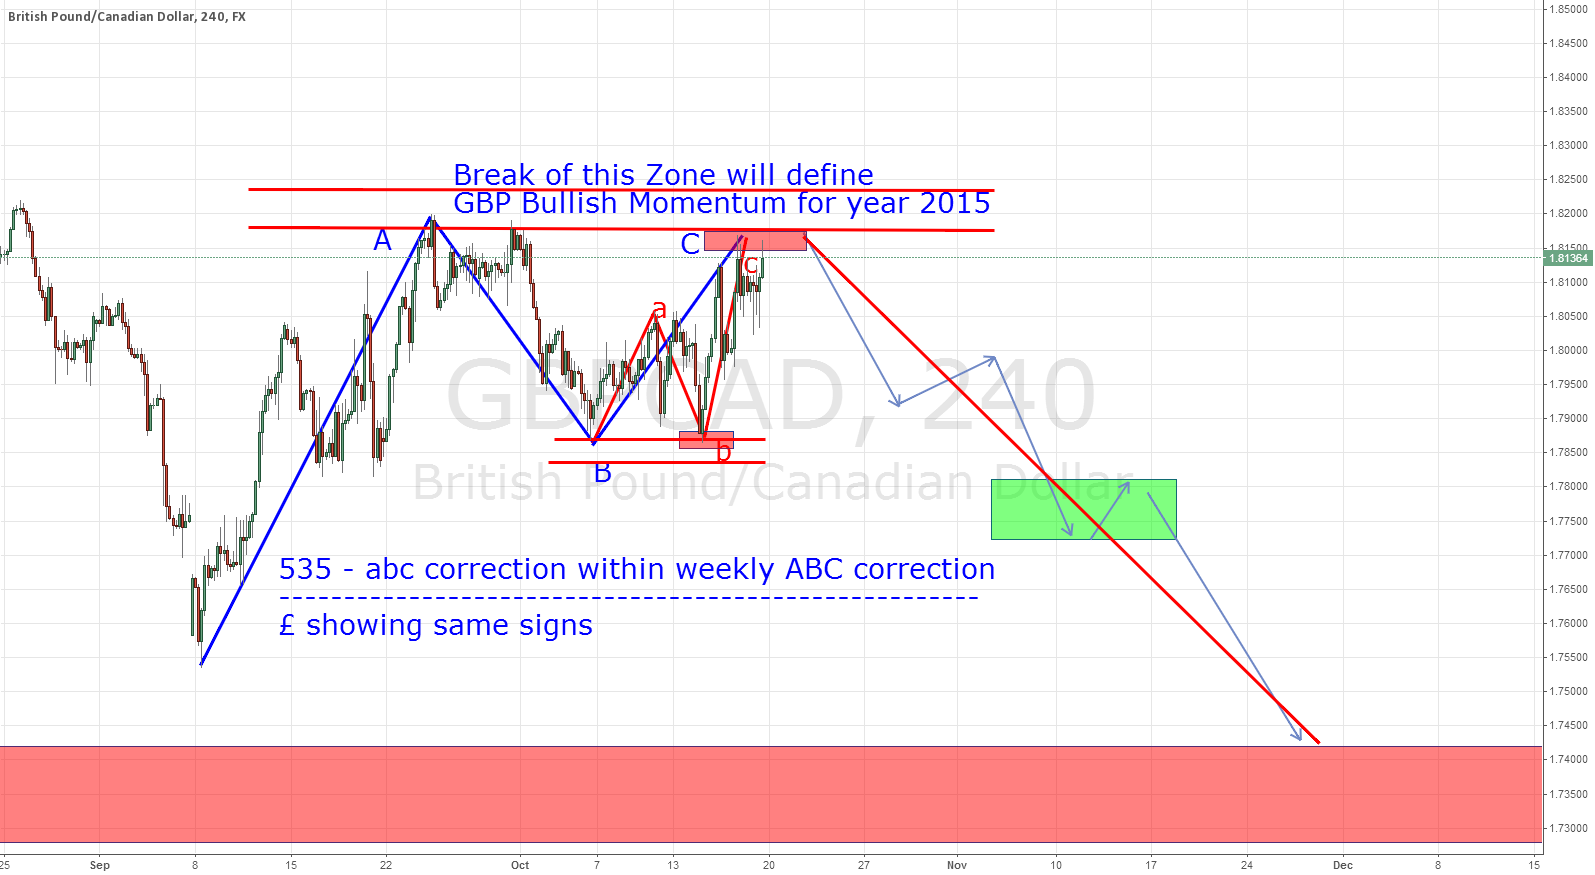 Possibility till Christmas - Bearish